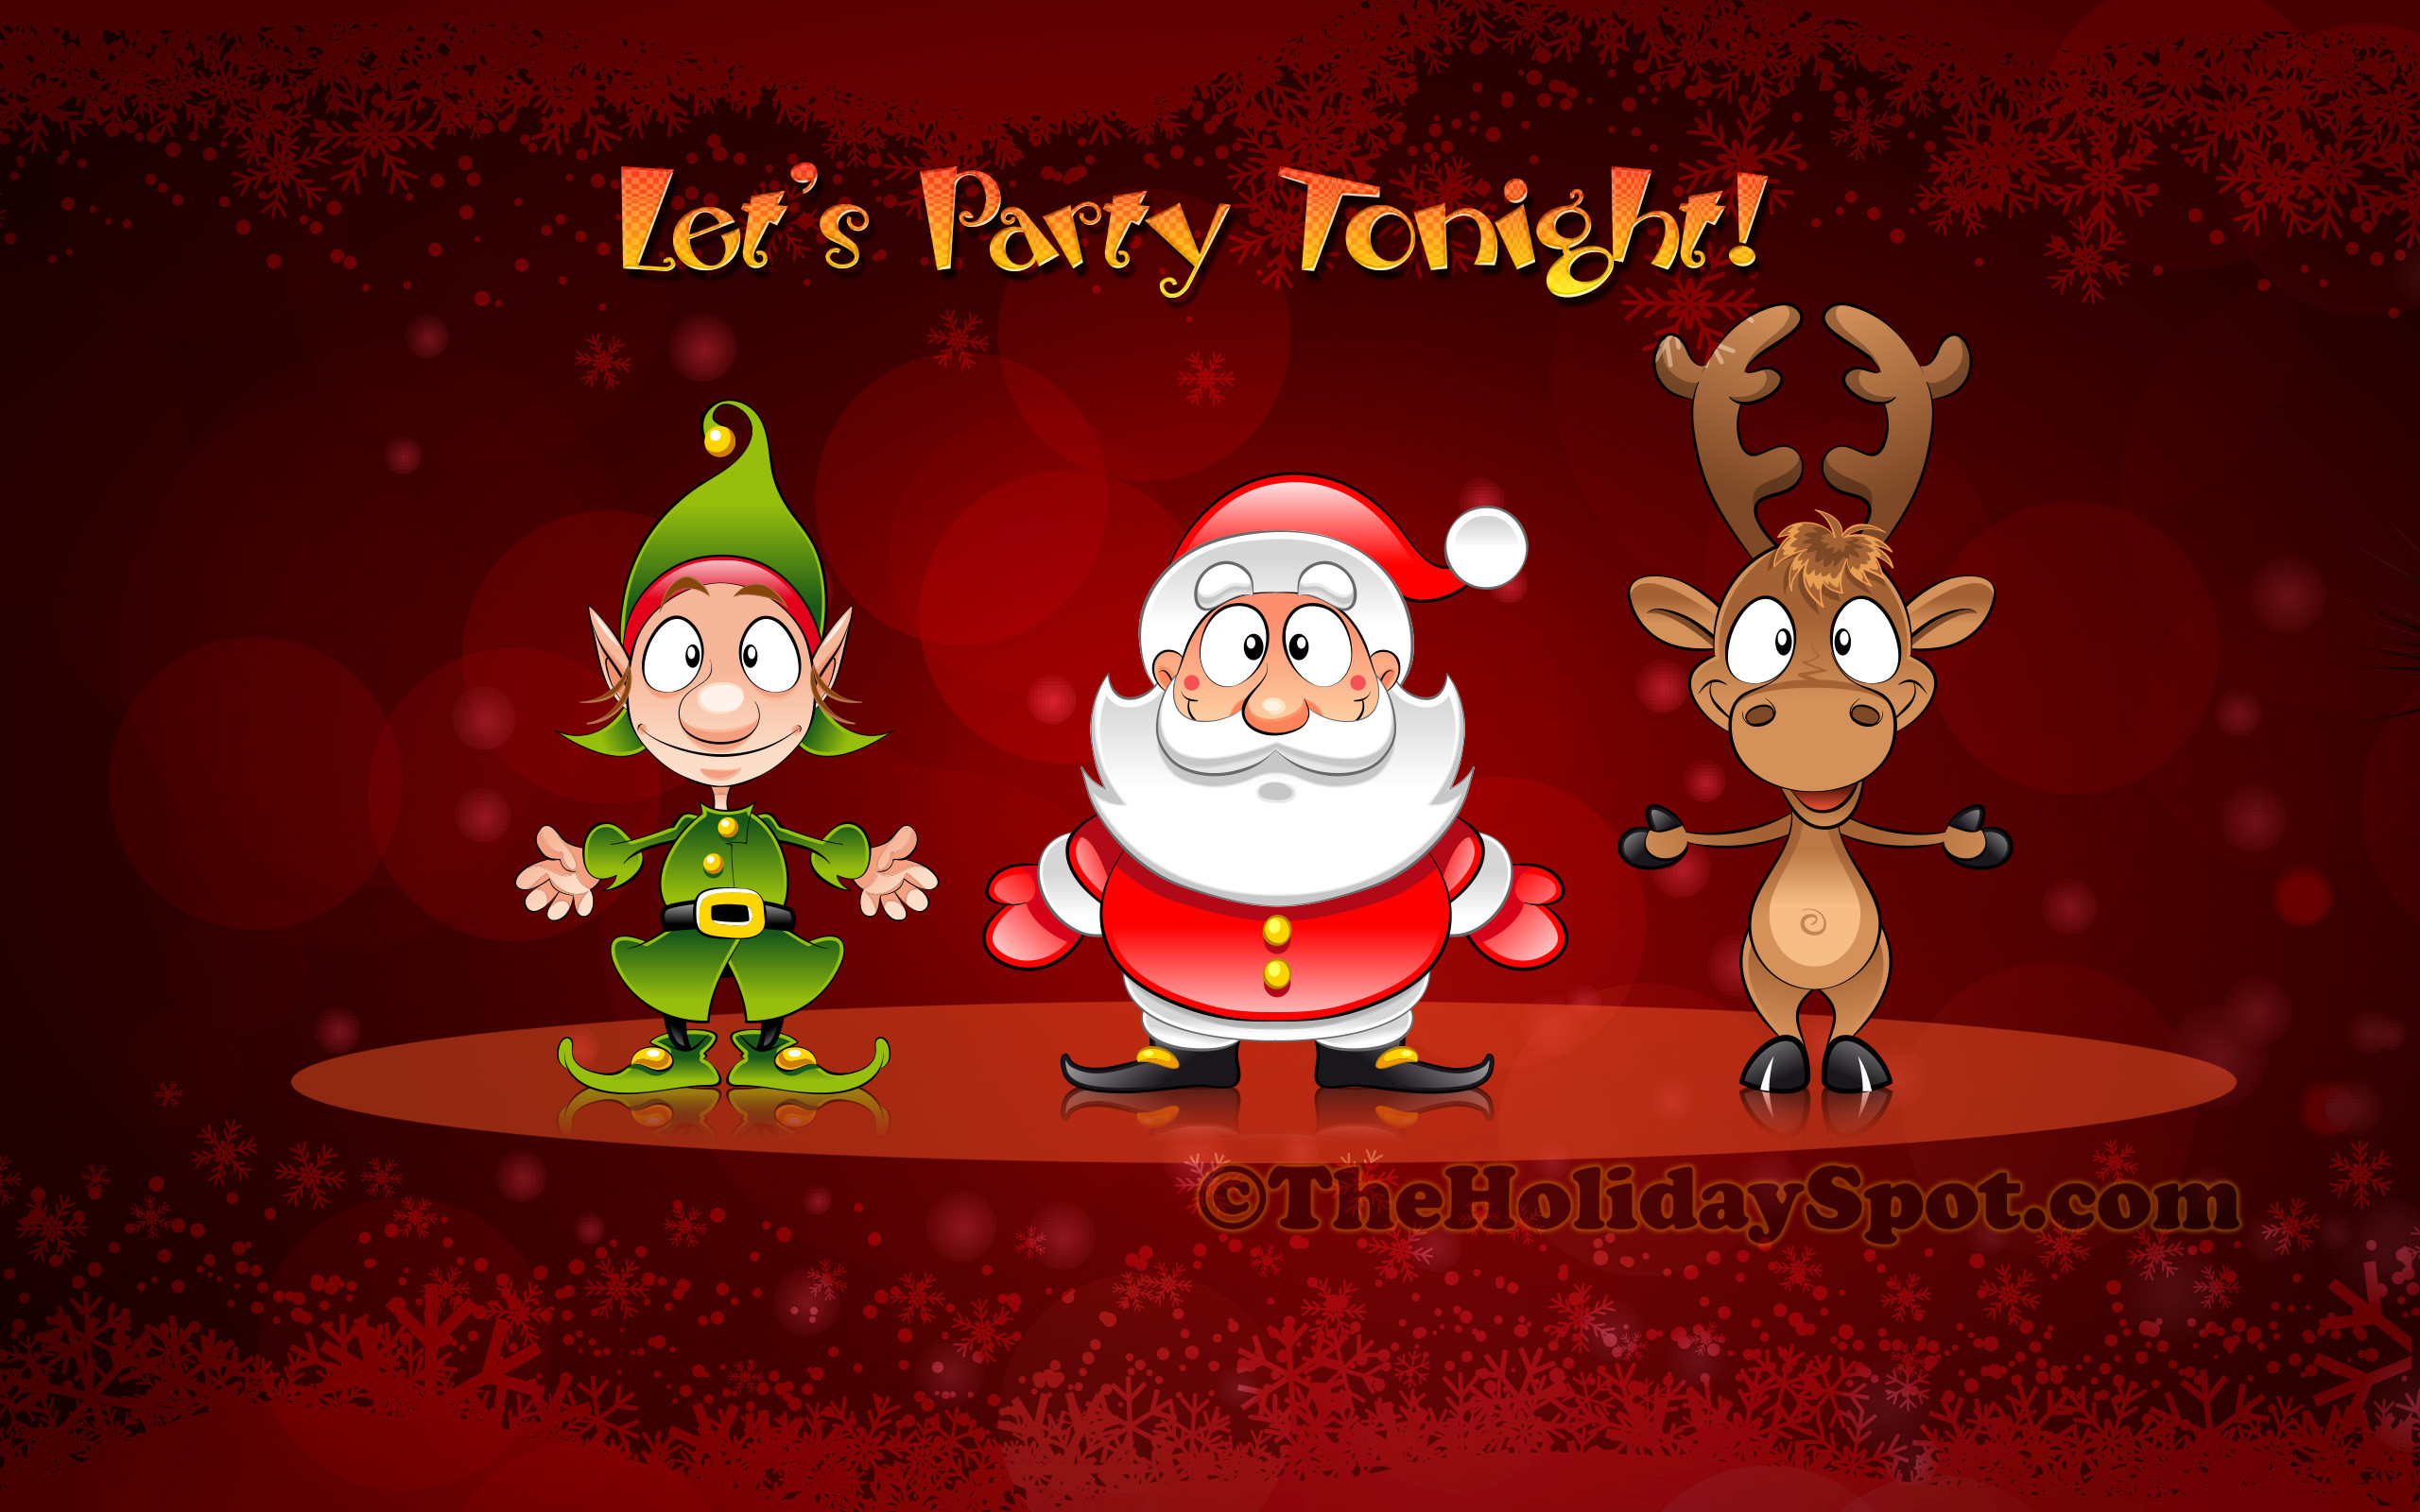 2560x1600 Christmas Wallpaper of Santa, Elve and Reindeer